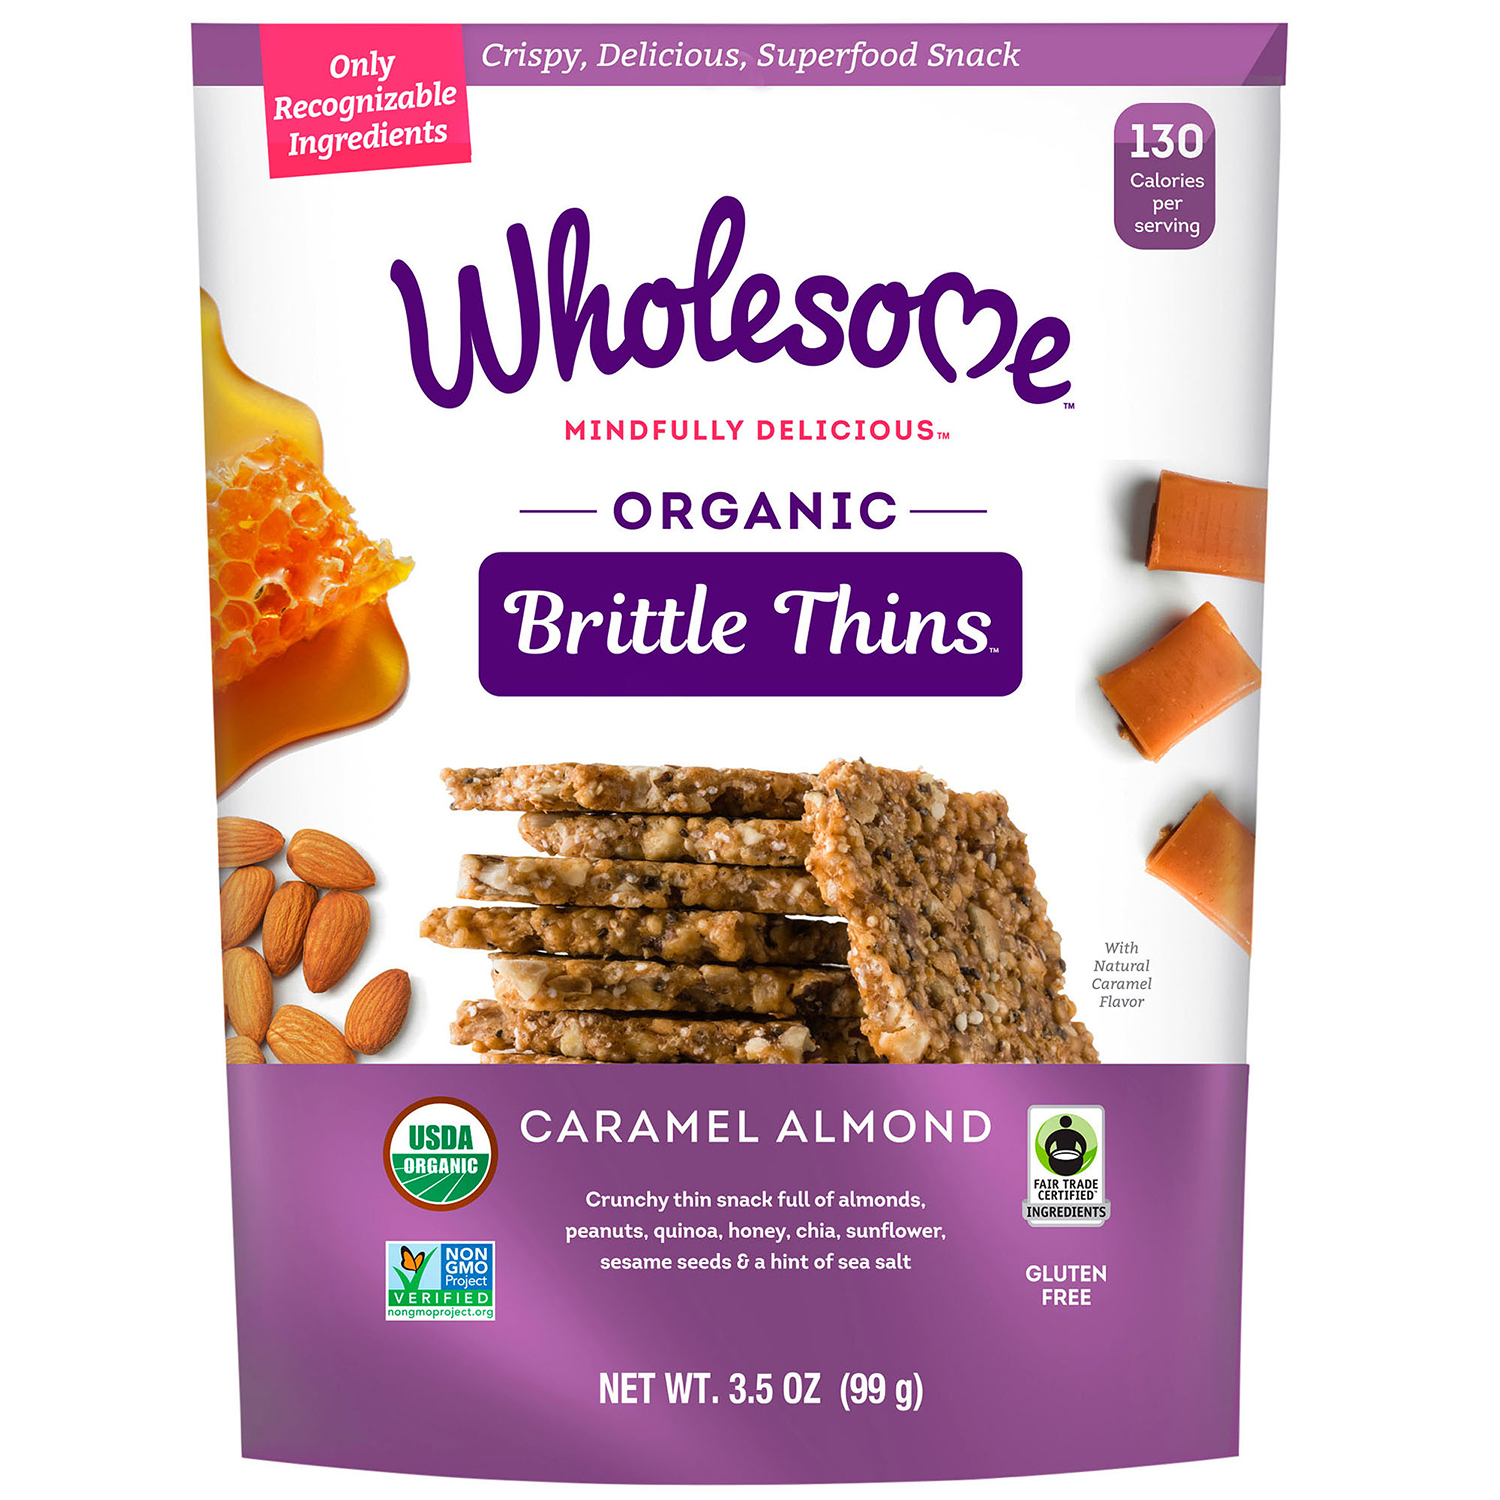 wholesome organic brittle thins caramel almond